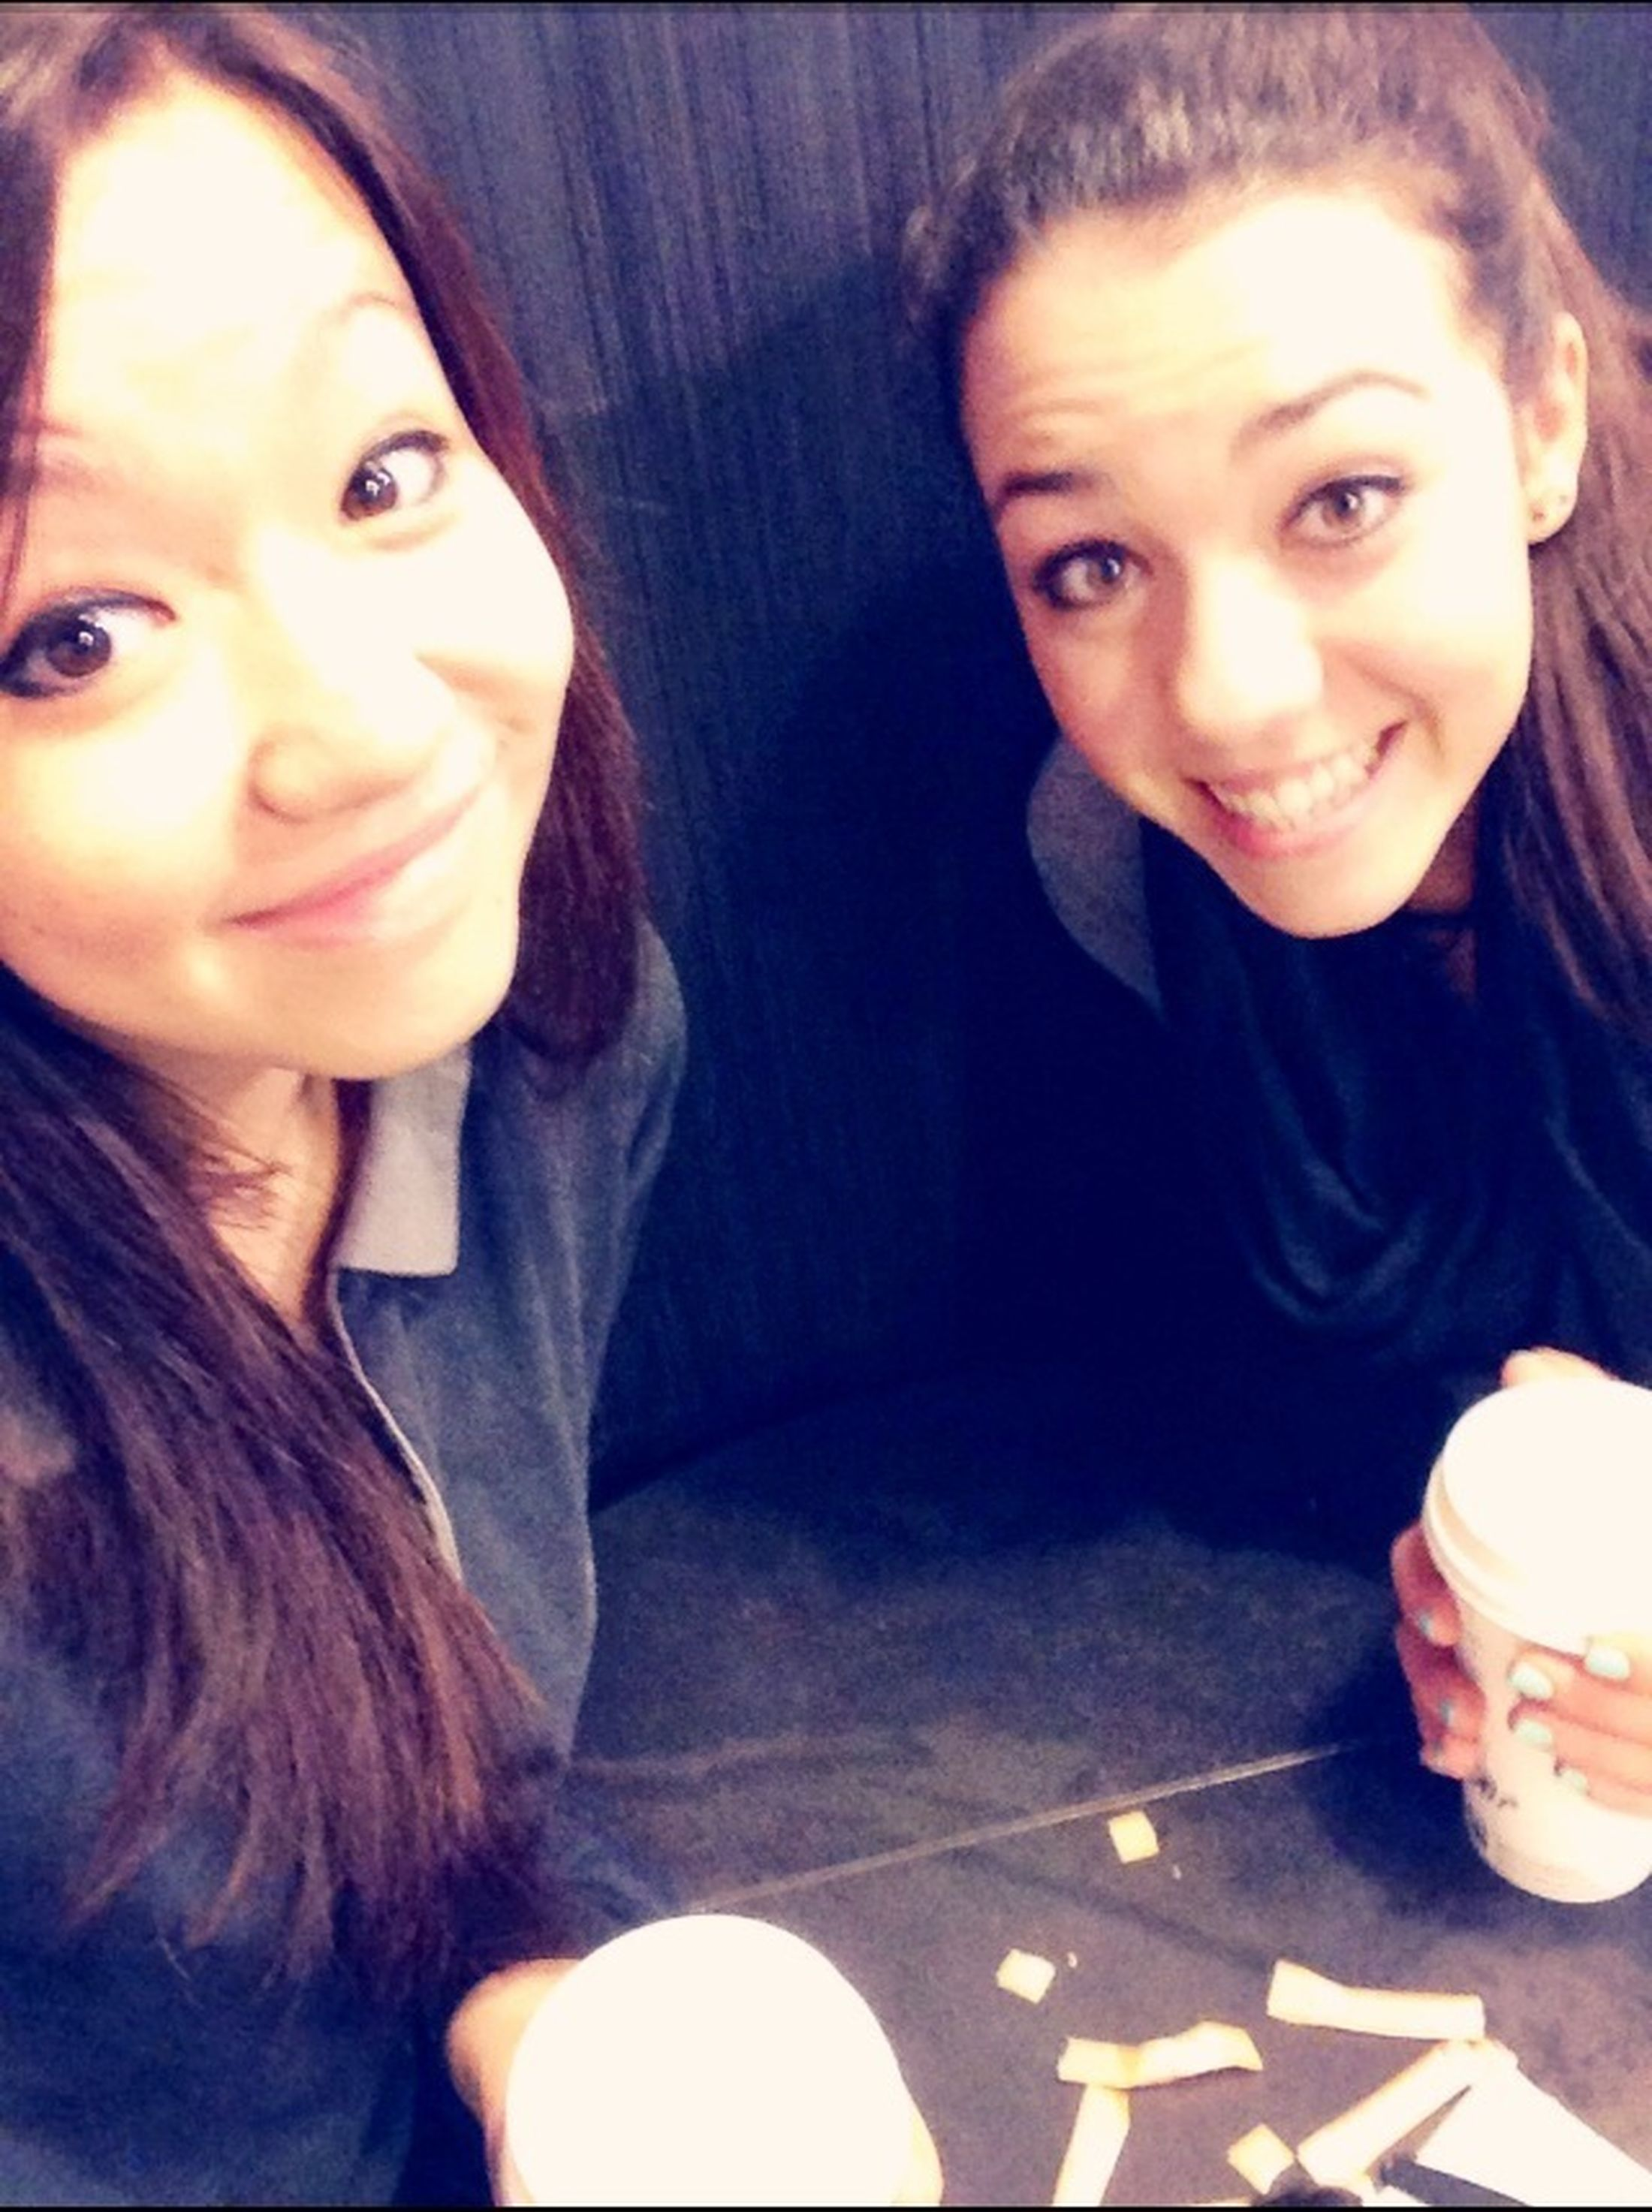 Coffee time Starbuck Capuccino  - loveher friends